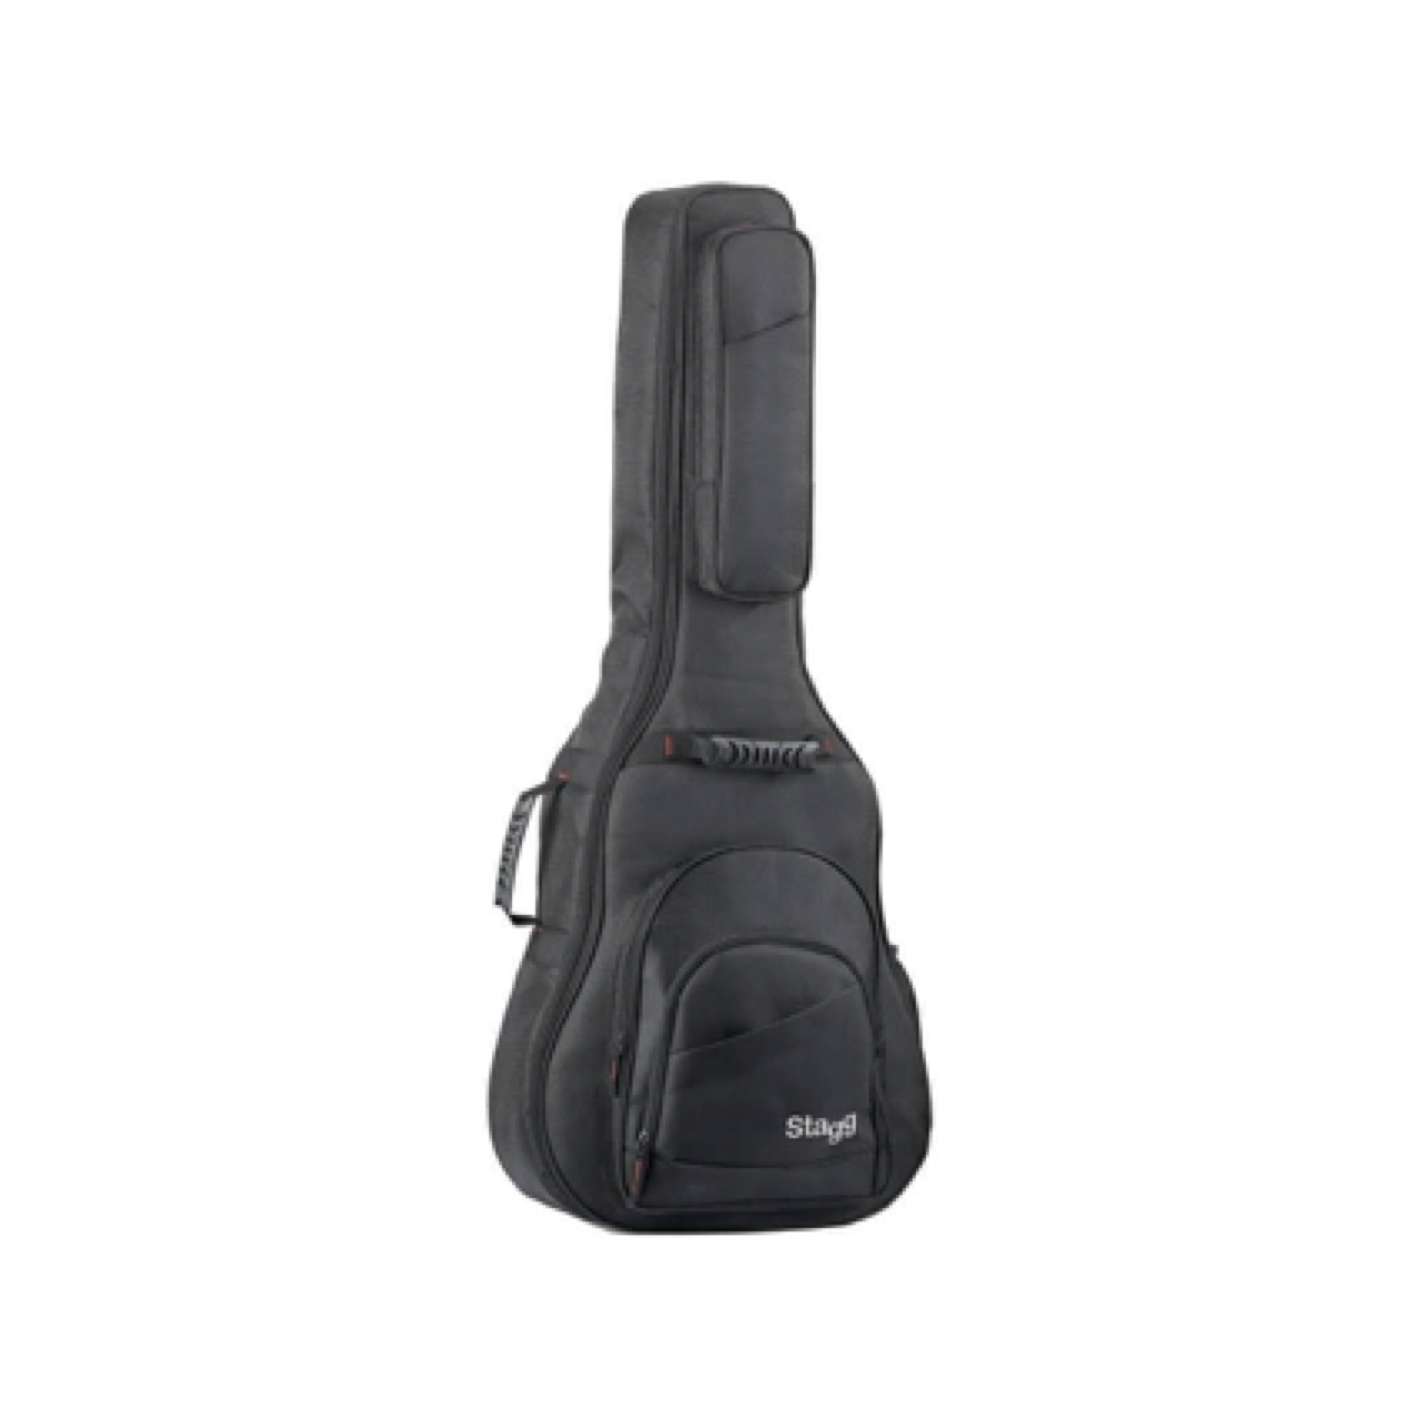 Stagg Ndura Acoustic Guitar Bag STB-ndura 15 w